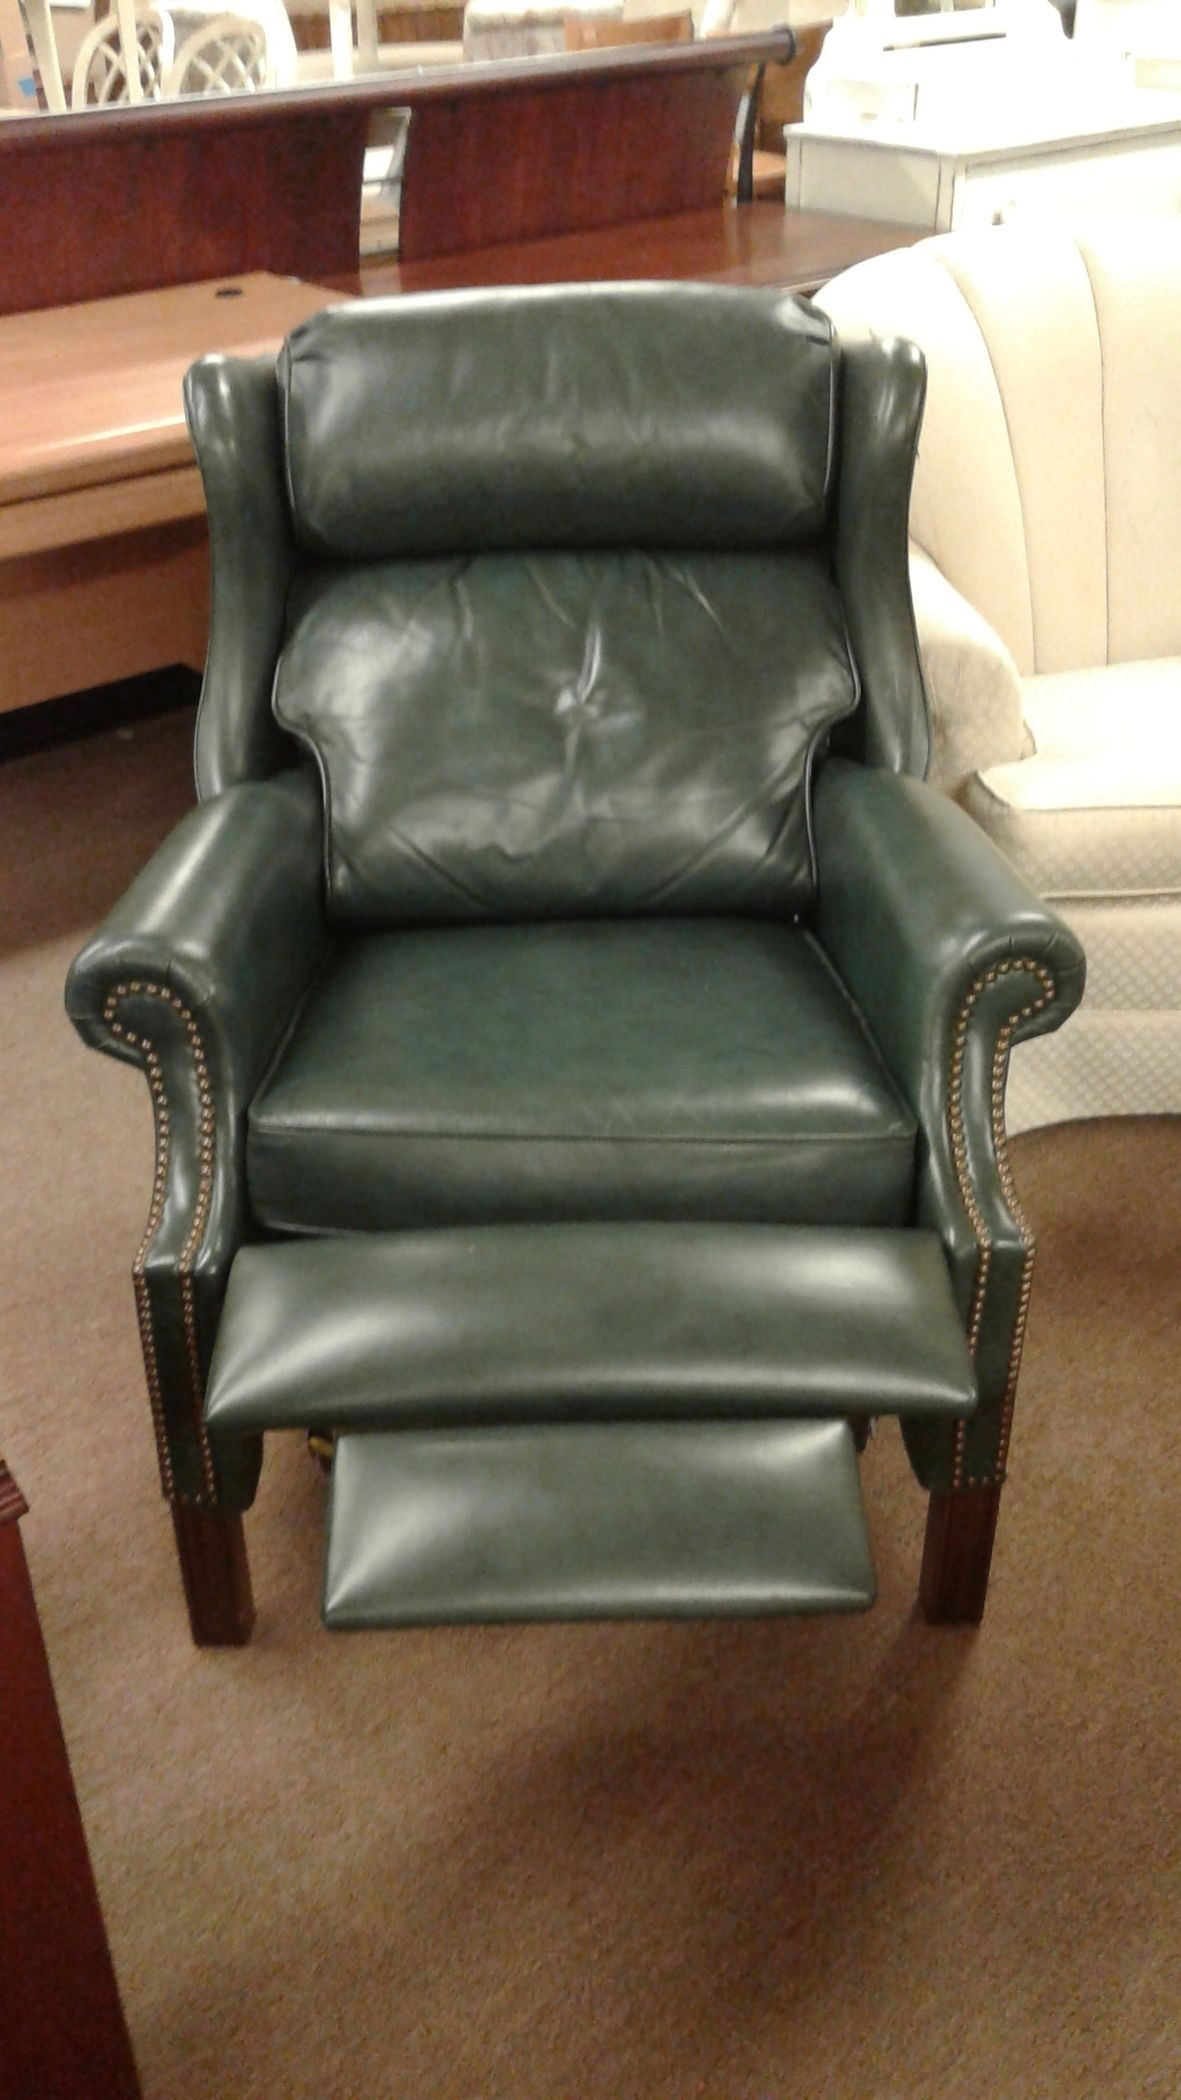 Hunter Green Leather Recliner Delmarva Furniture Consignment